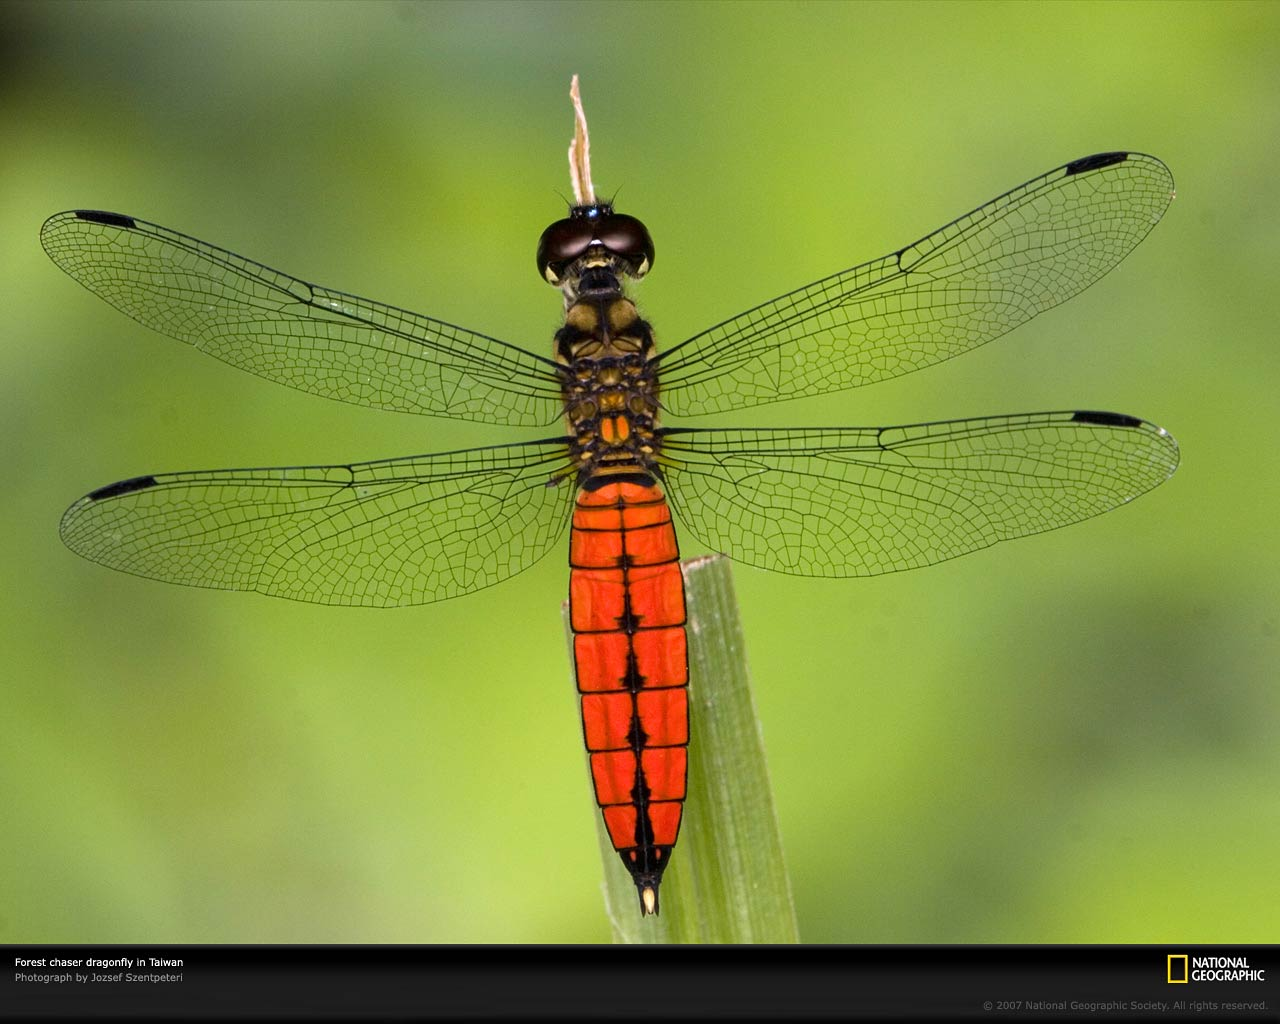 free Dragonfly wallpaper wallpapers download 1280x1024